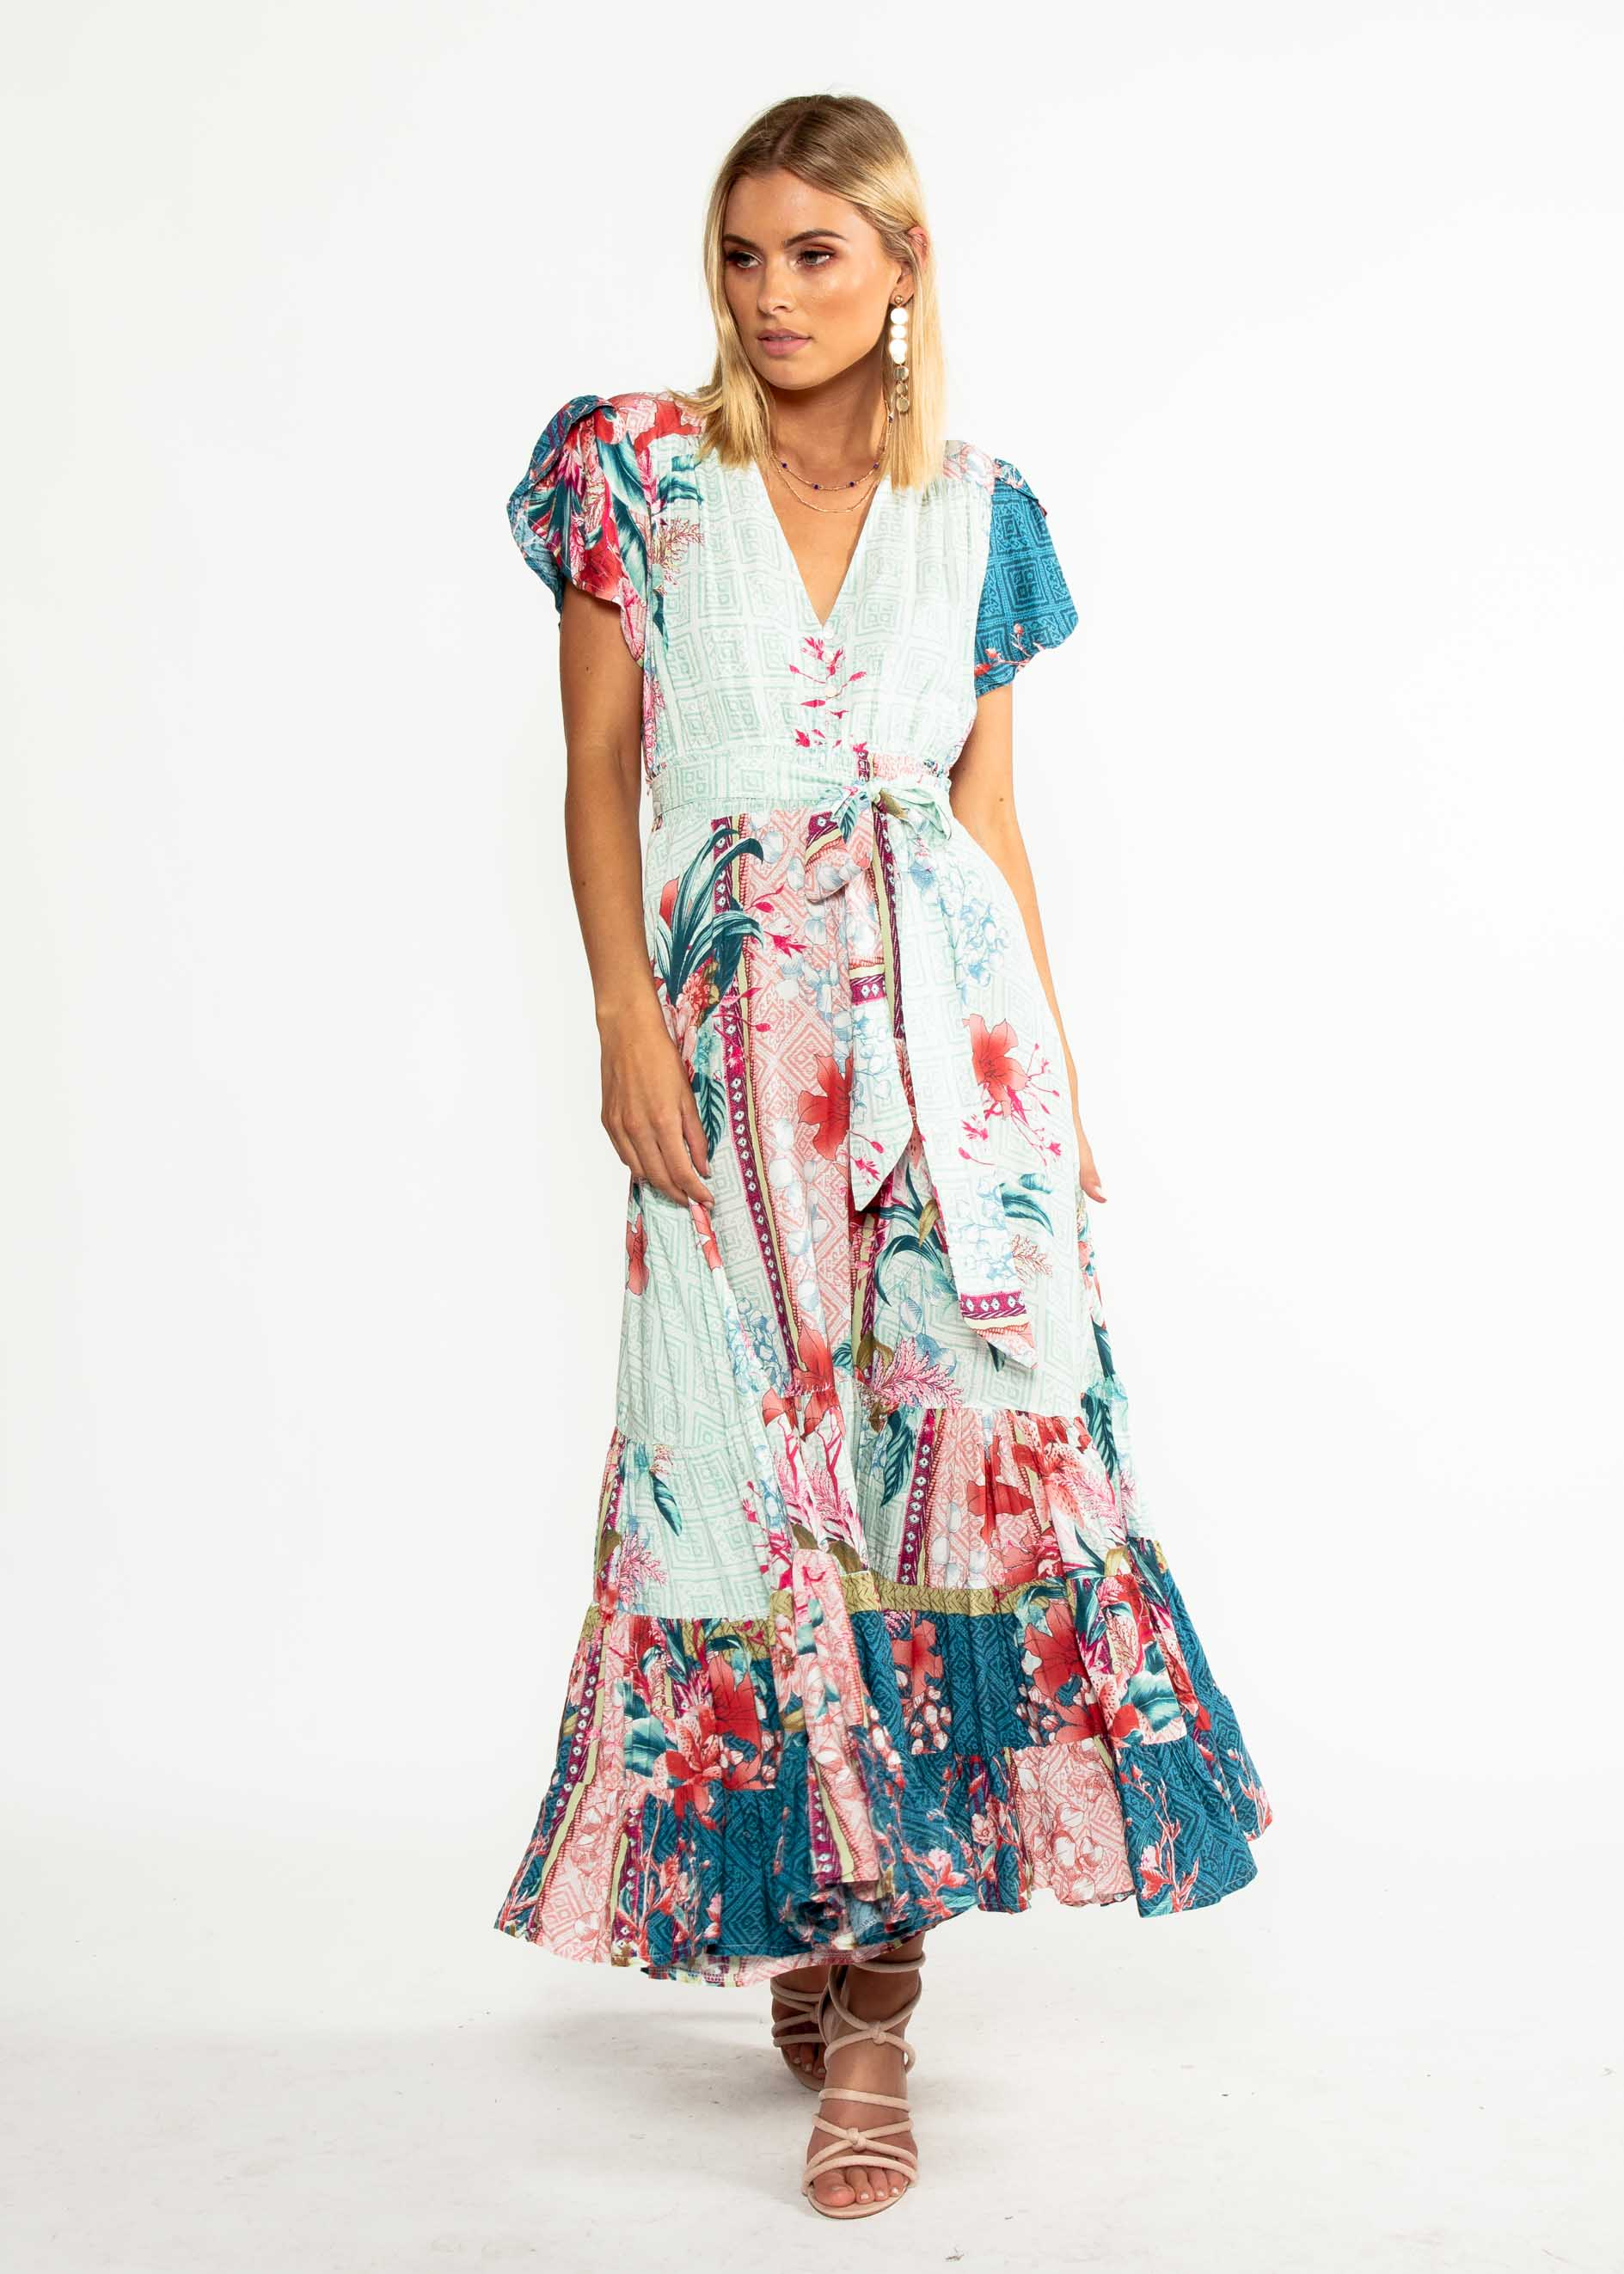 Matisse Maxi Dress - Cemeli